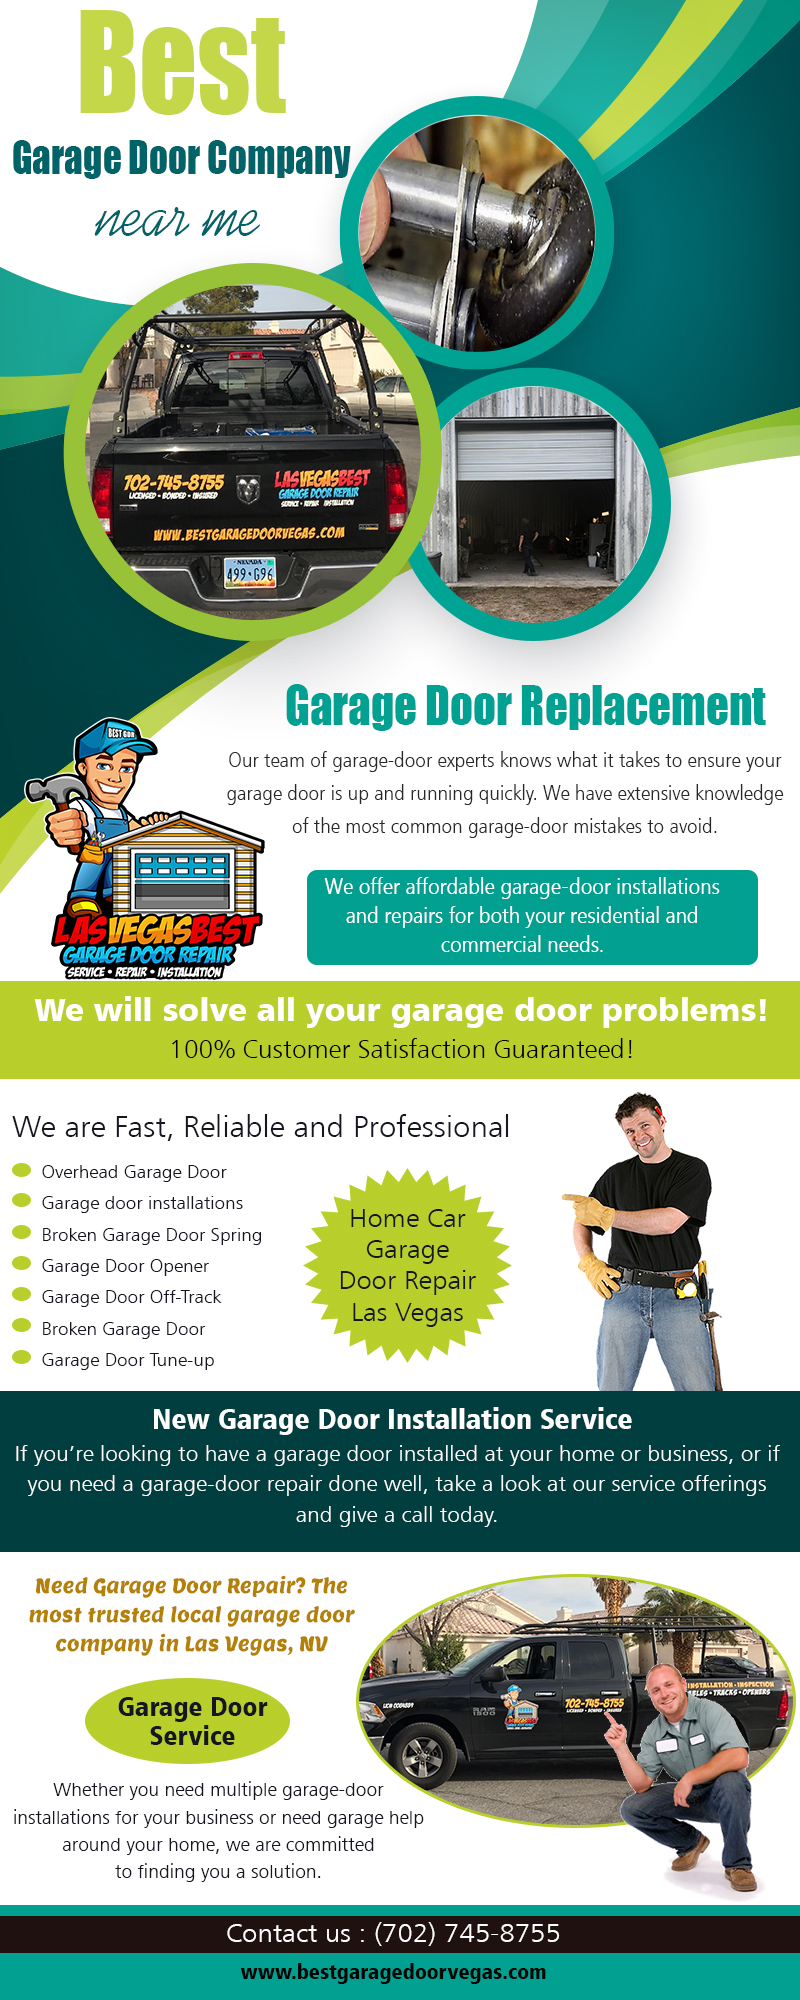 Best Garage Door Company near me